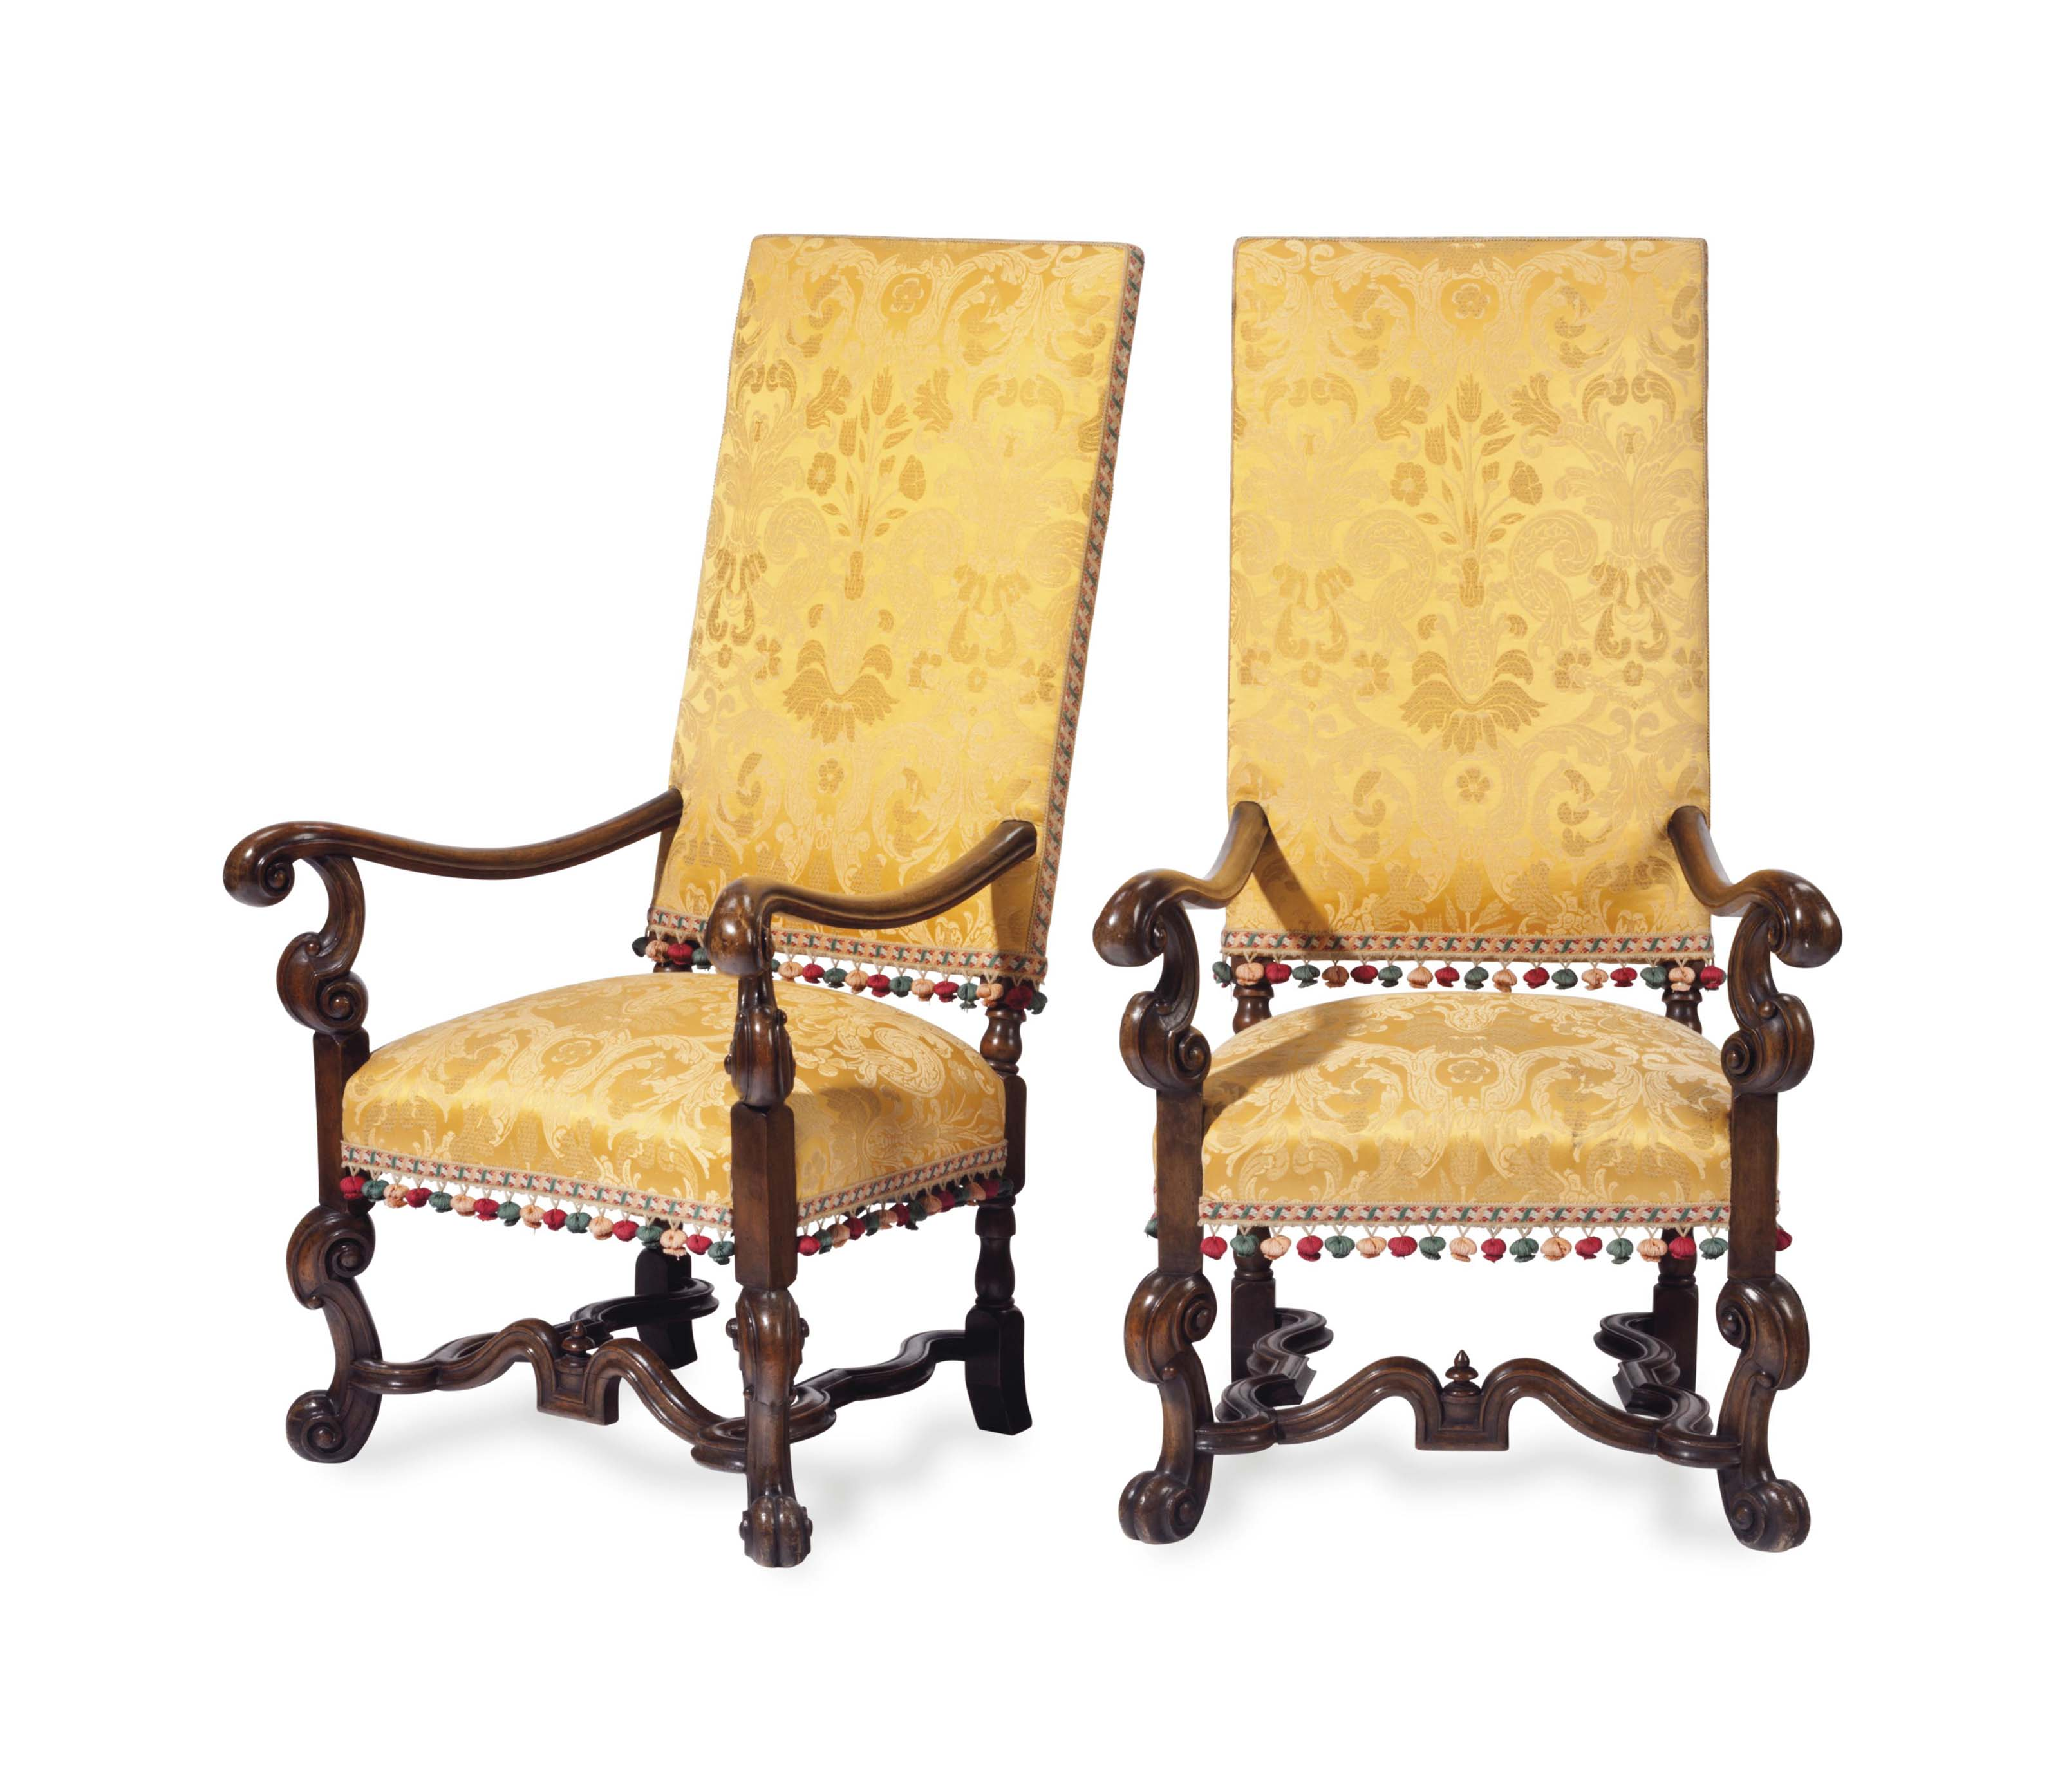 A SET OF FOUR BAROQUE STYLE WALNUT OPEN ARMCHAIRS COVERED IN YELLOW SILK DAMASK